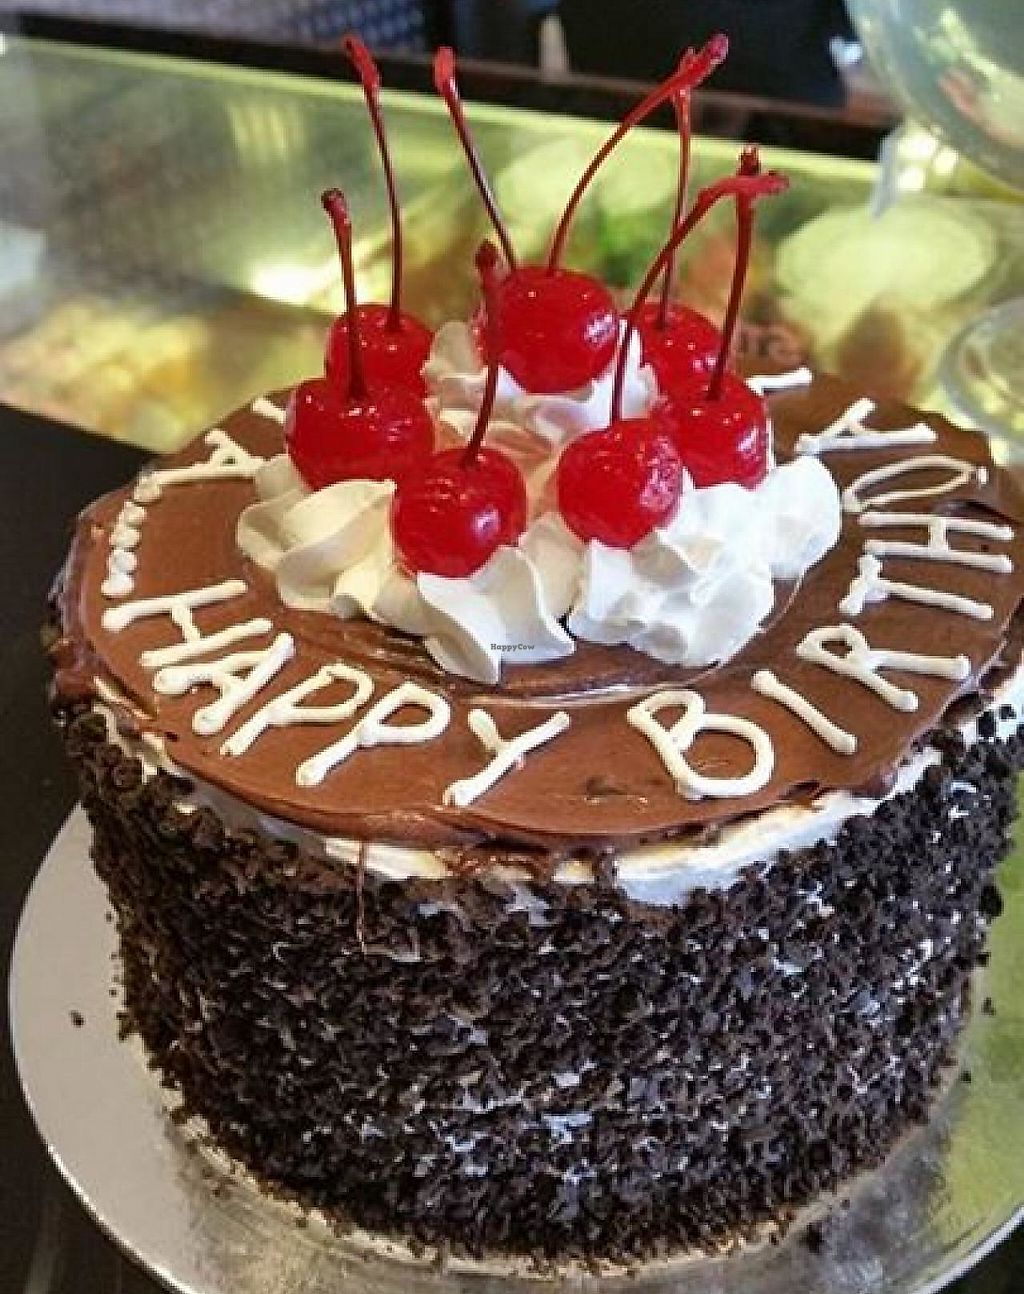 """Photo of Clink Eggless Cakes  by <a href=""""/members/profile/community"""">community</a> <br/>Clink Eggless Cakes <br/> September 19, 2014  - <a href='/contact/abuse/image/51122/255418'>Report</a>"""